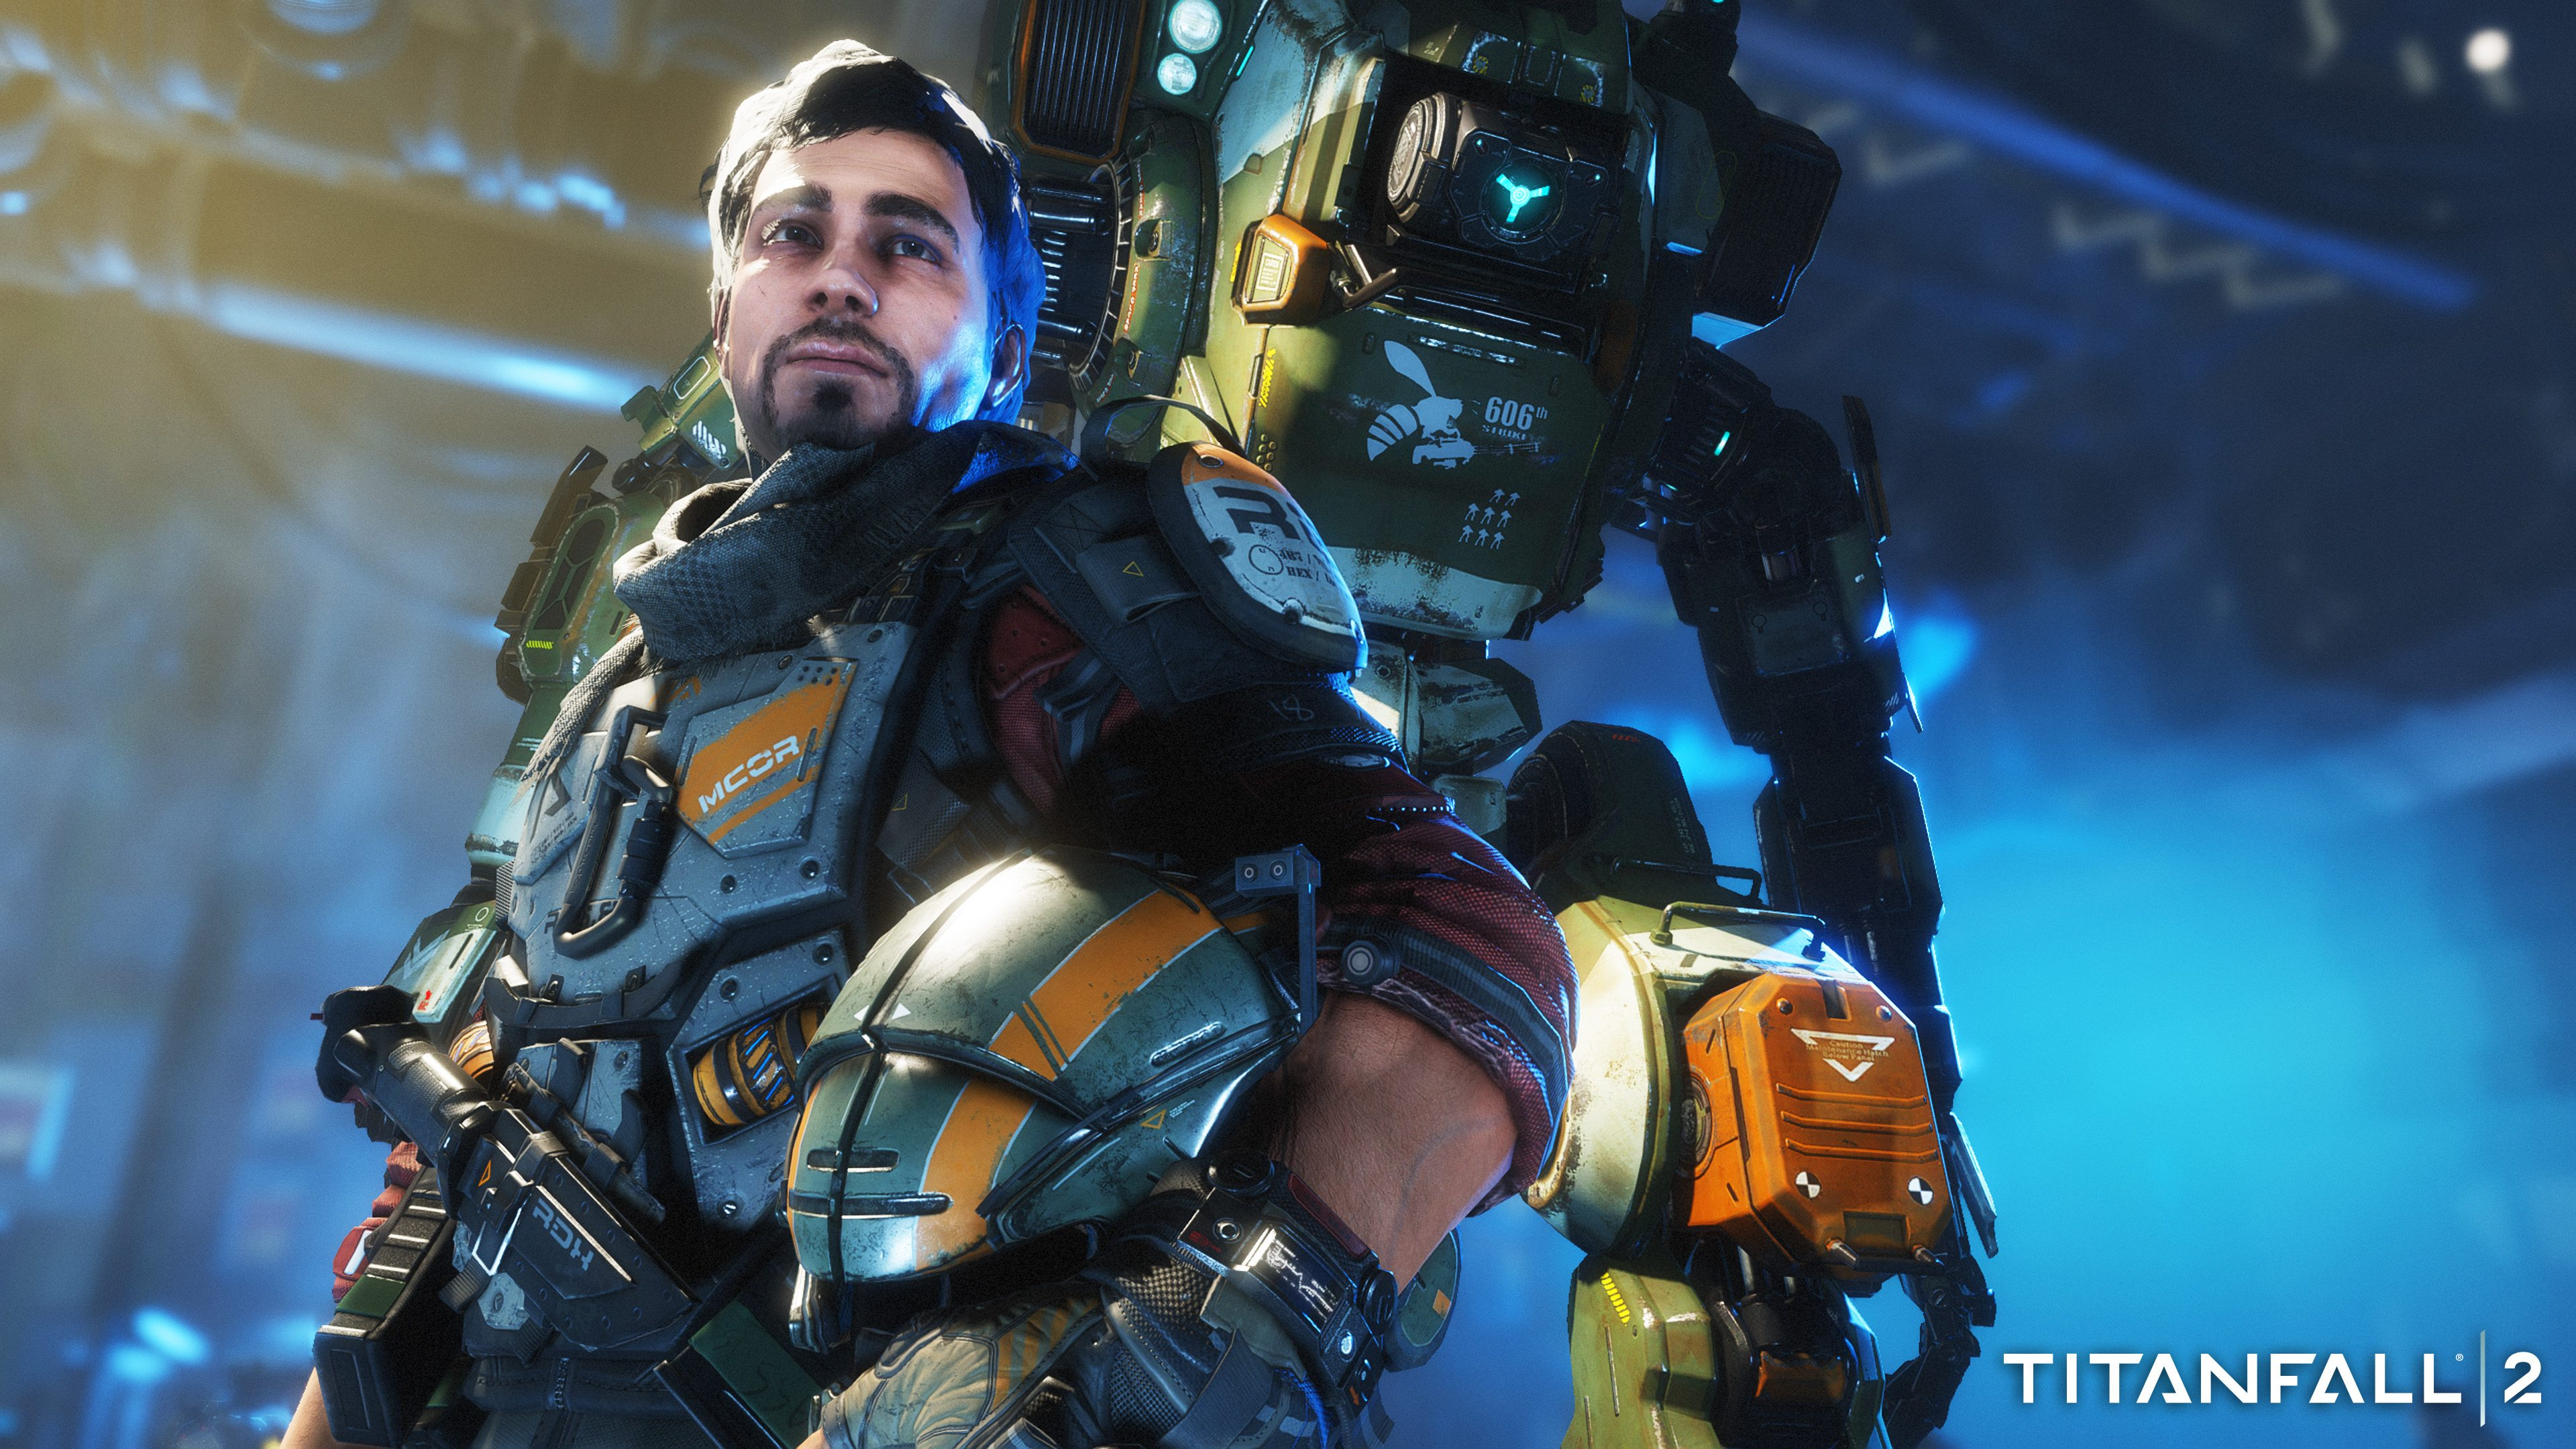 Titanfall 2 characters